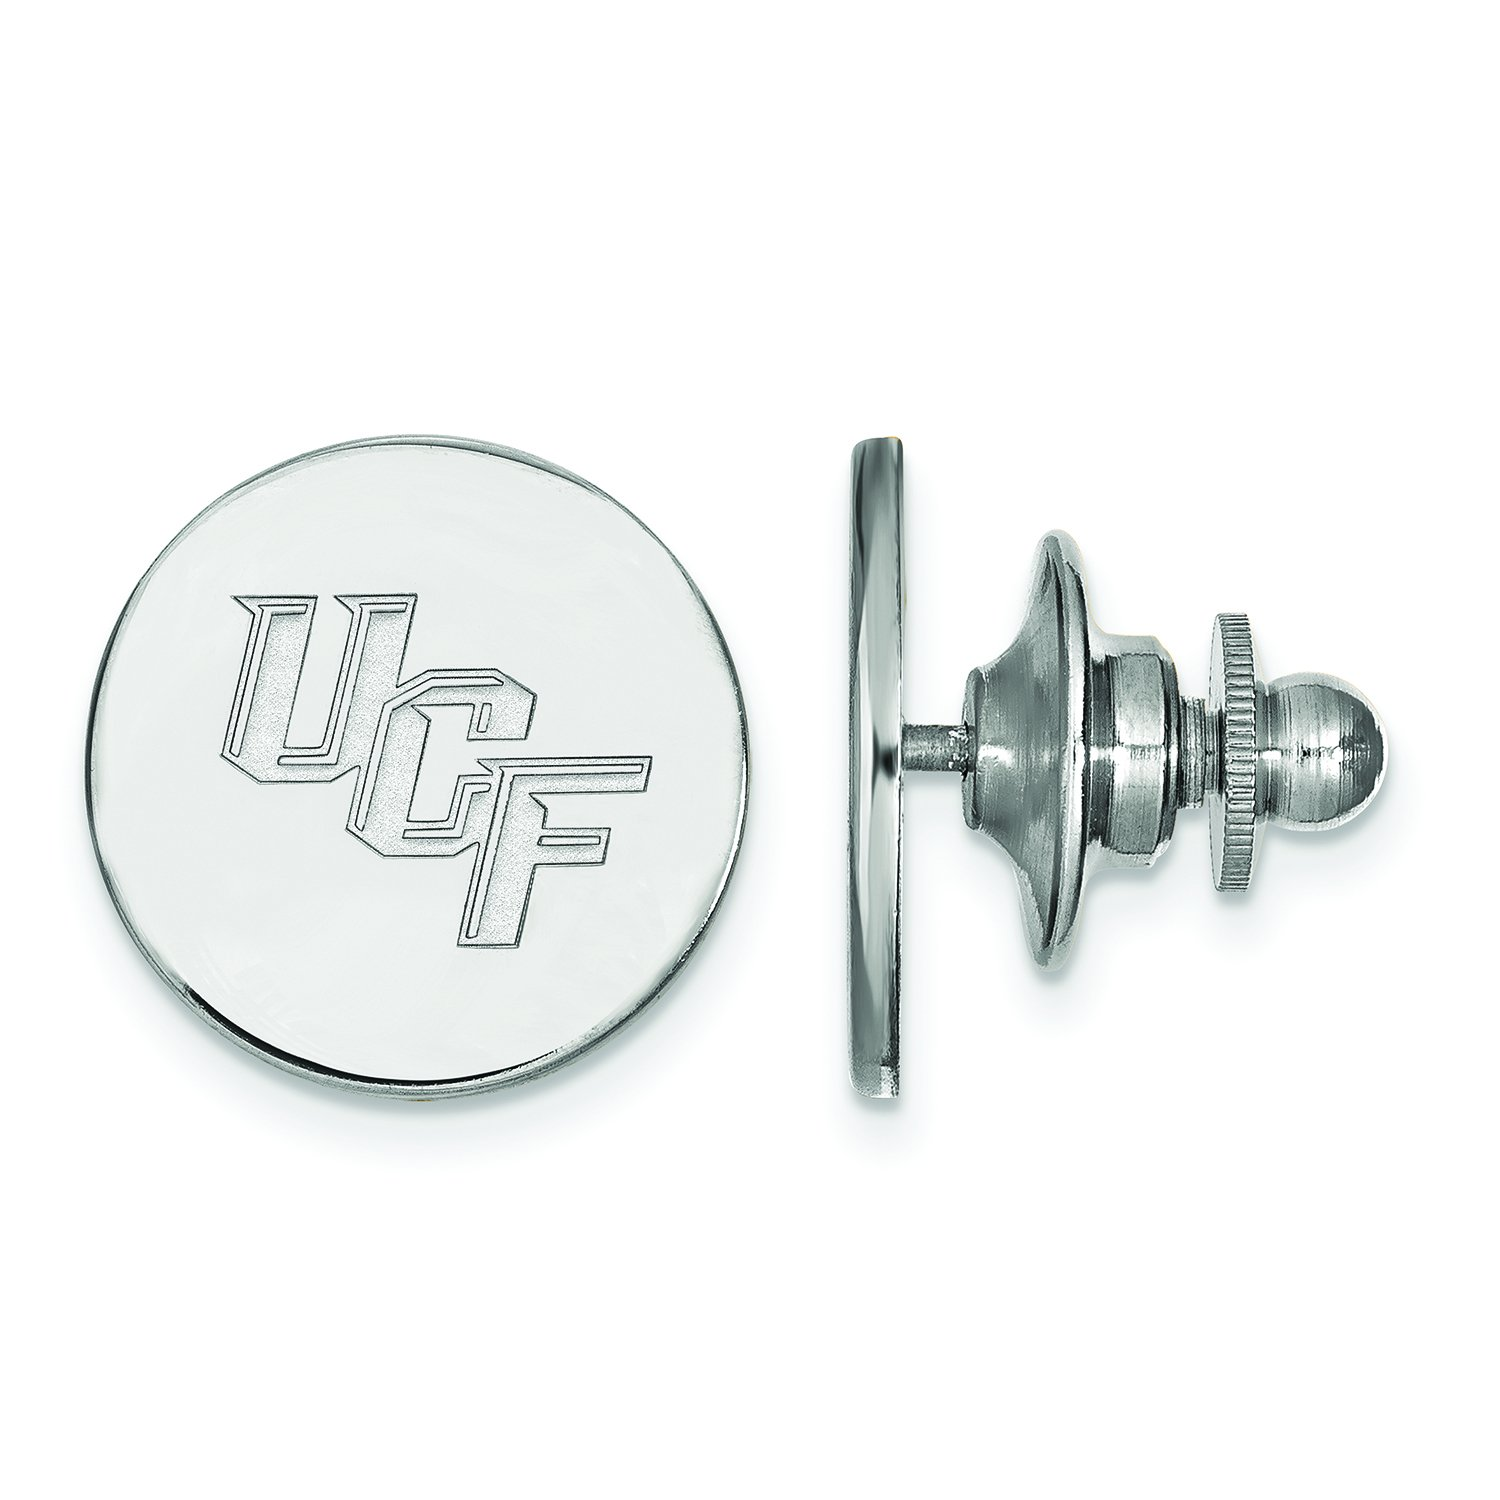 Central Florida Lapel Pin 14k White Gold